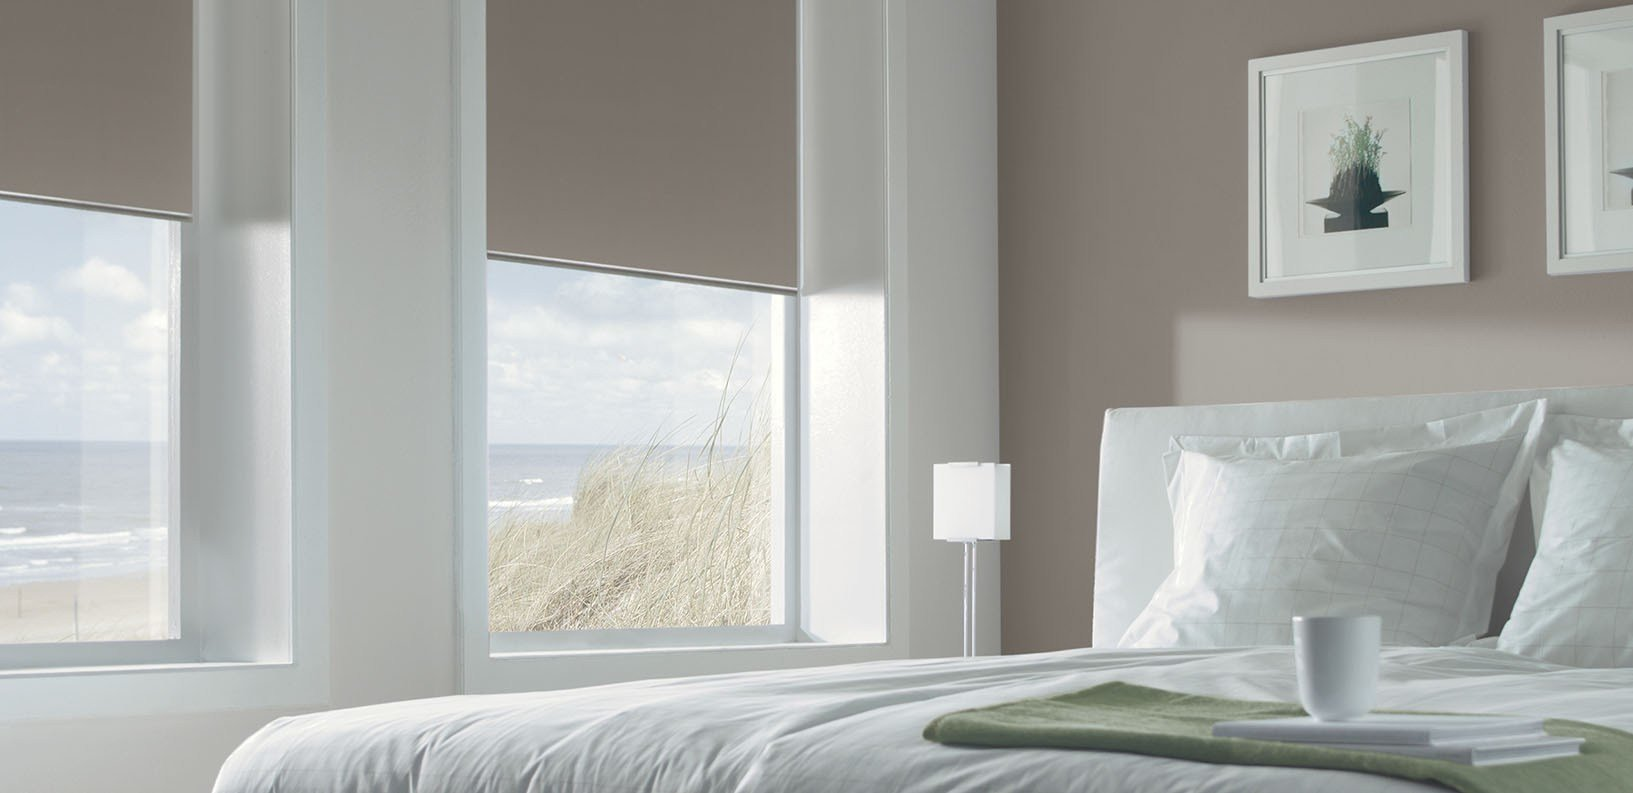 Best Roller Blinds Inspiration Gallery Luxaflex® With Pictures